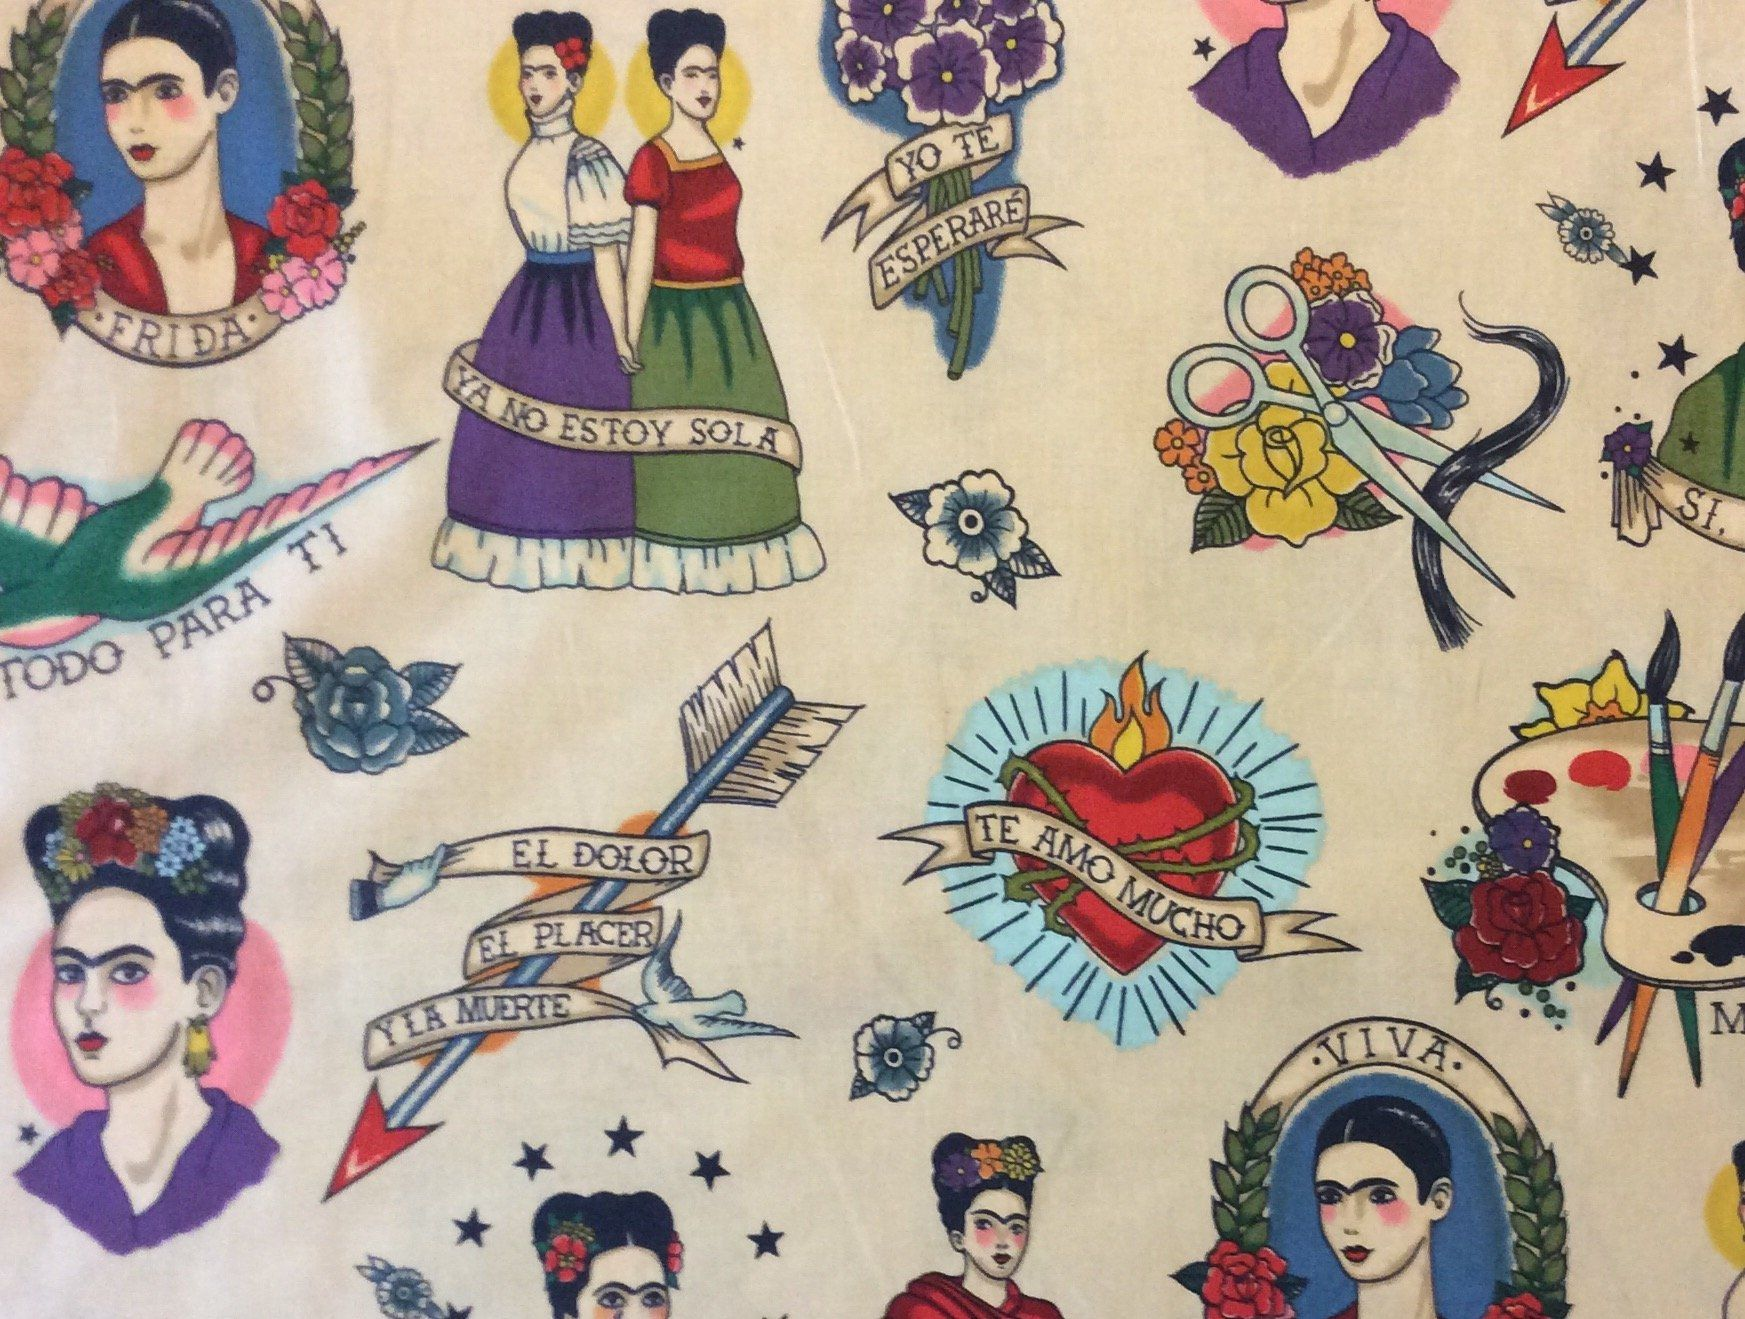 Ah167 Frida Kahlo Mexico Art Viva Love Tattoo Painting Quilting